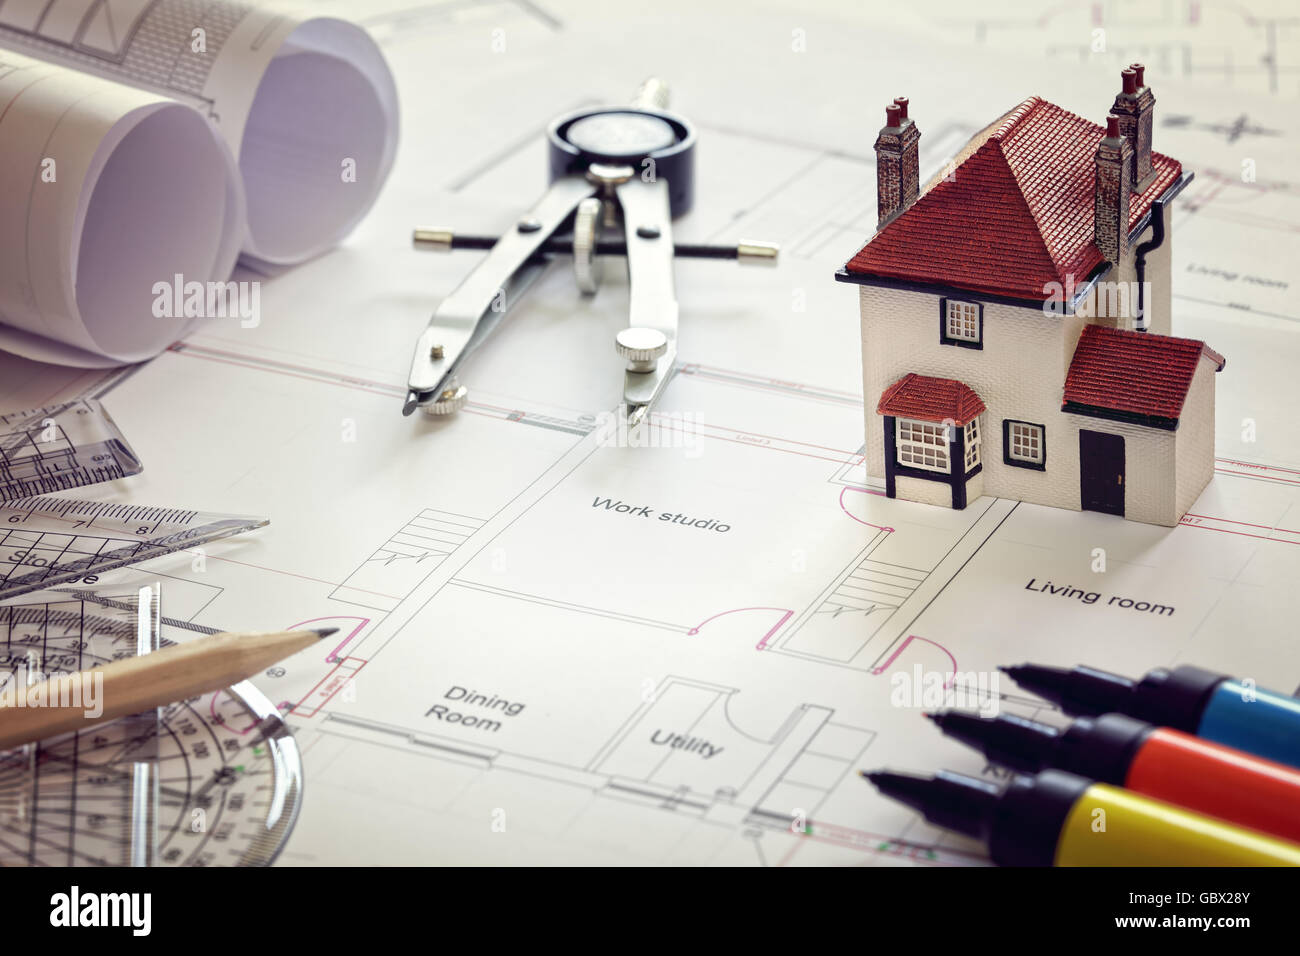 House plan blueprint and model house concept for new house design house plan blueprint and model house concept for new house design or home improvement malvernweather Gallery